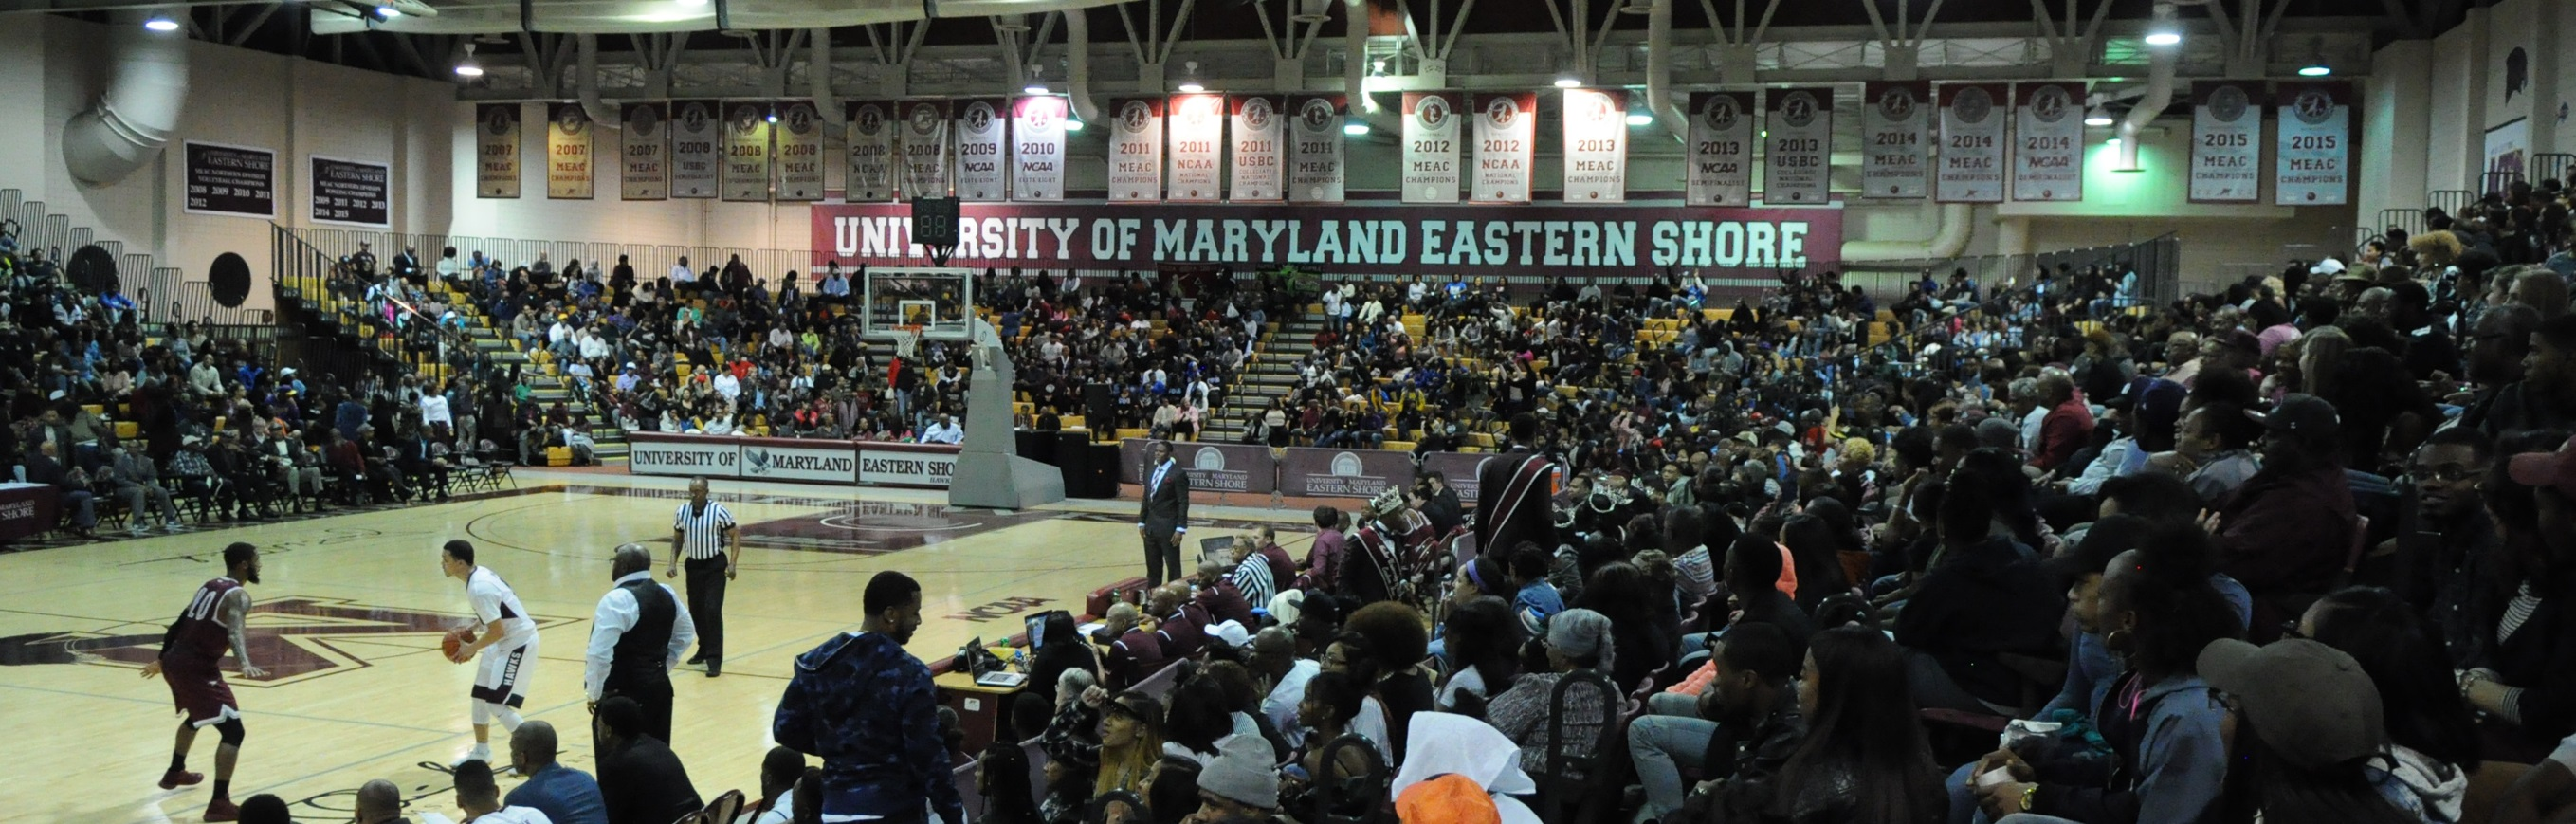 University of Maryland Eastern Shore | Ticketing